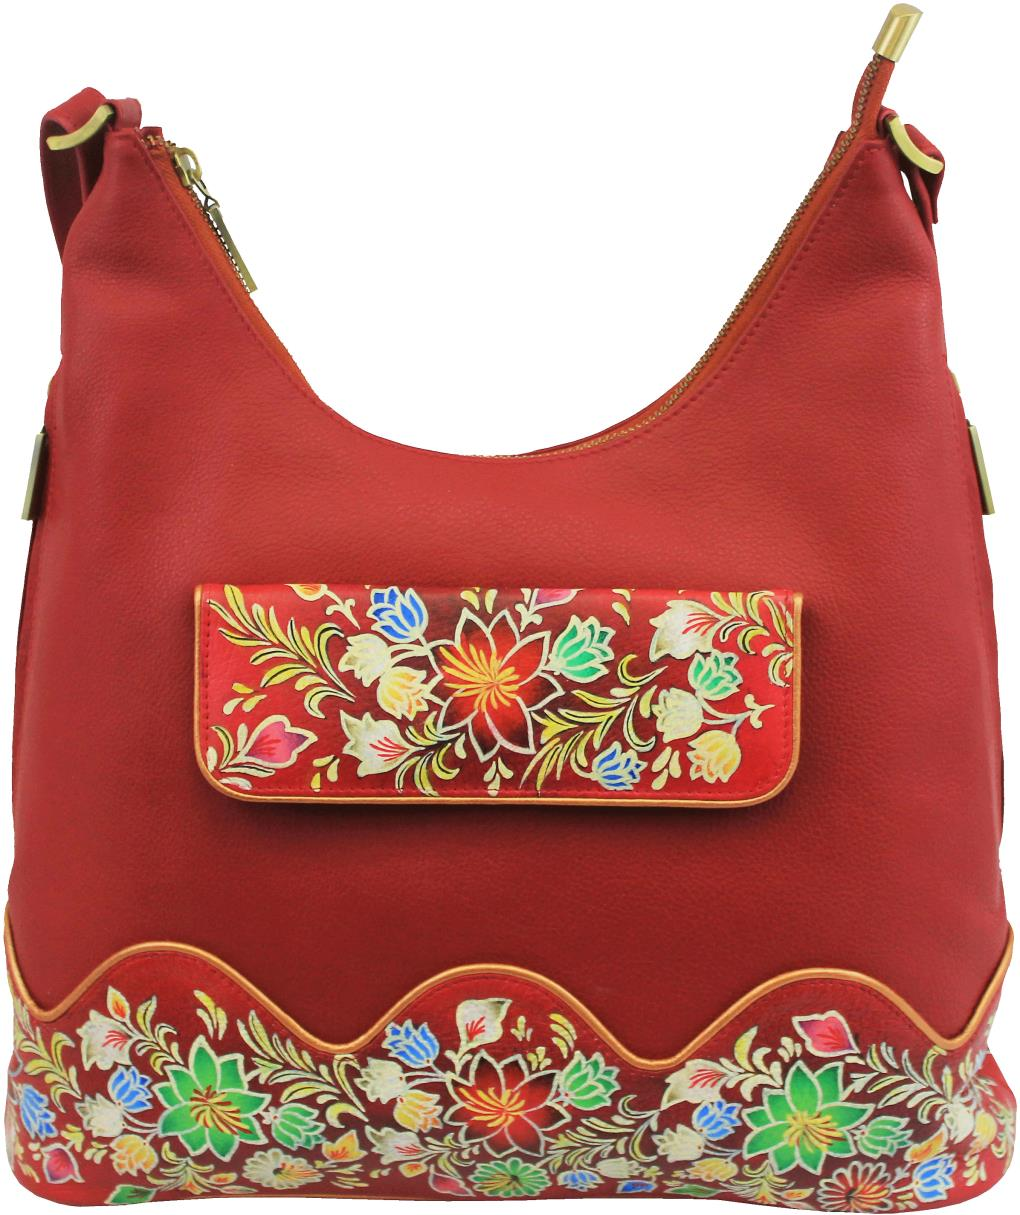 6324c49dfb Hand painted shoulder bag with easy access border flap - Sylvias ...